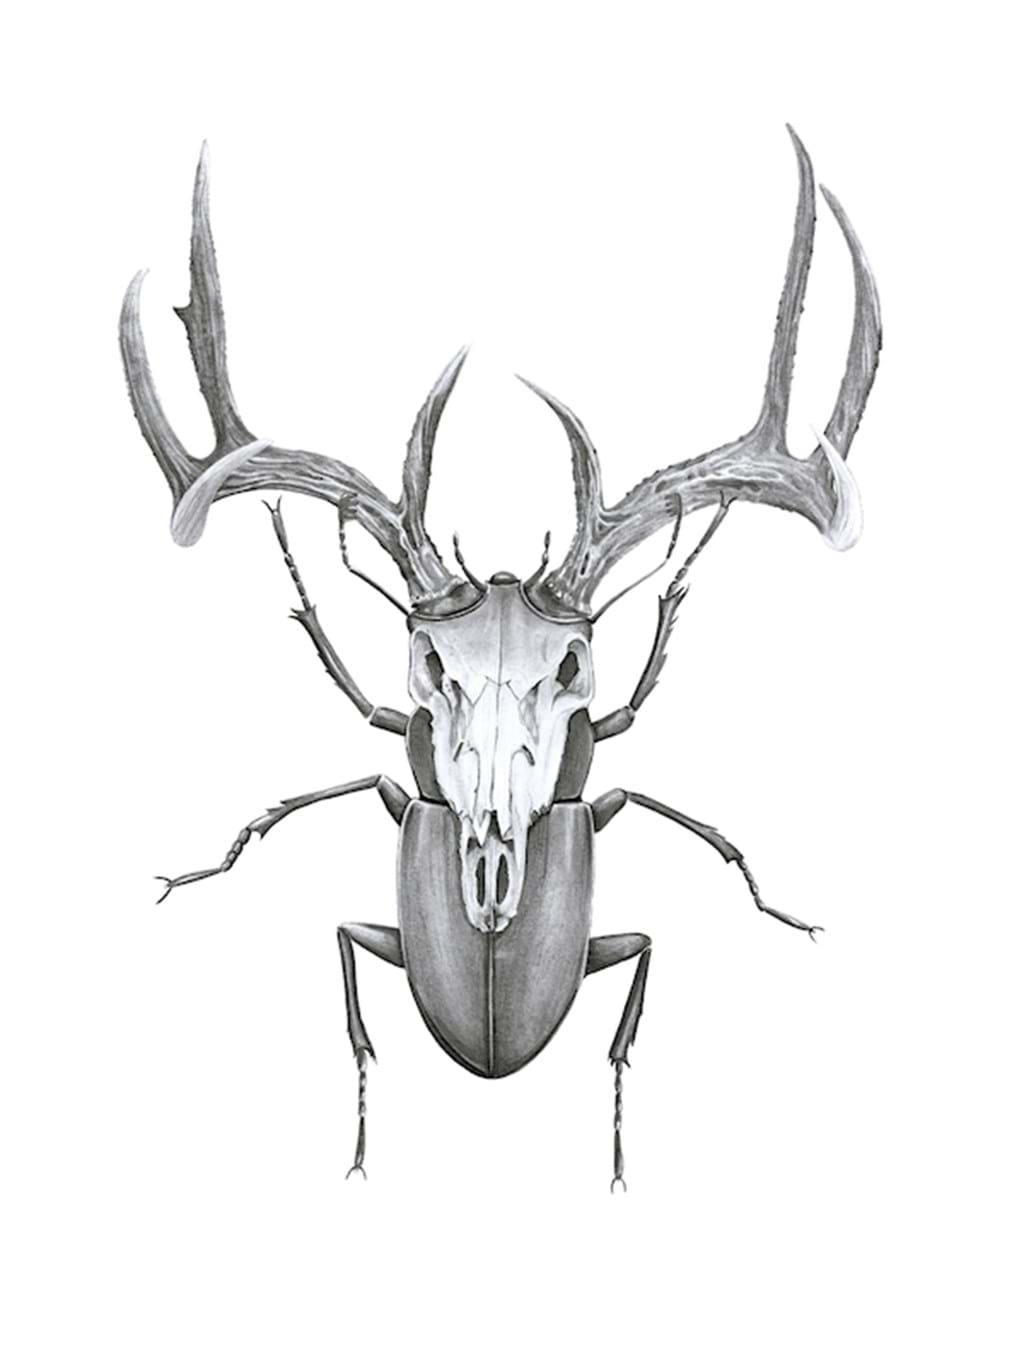 Poster: Mr Stag Bettle - Animal & Insects